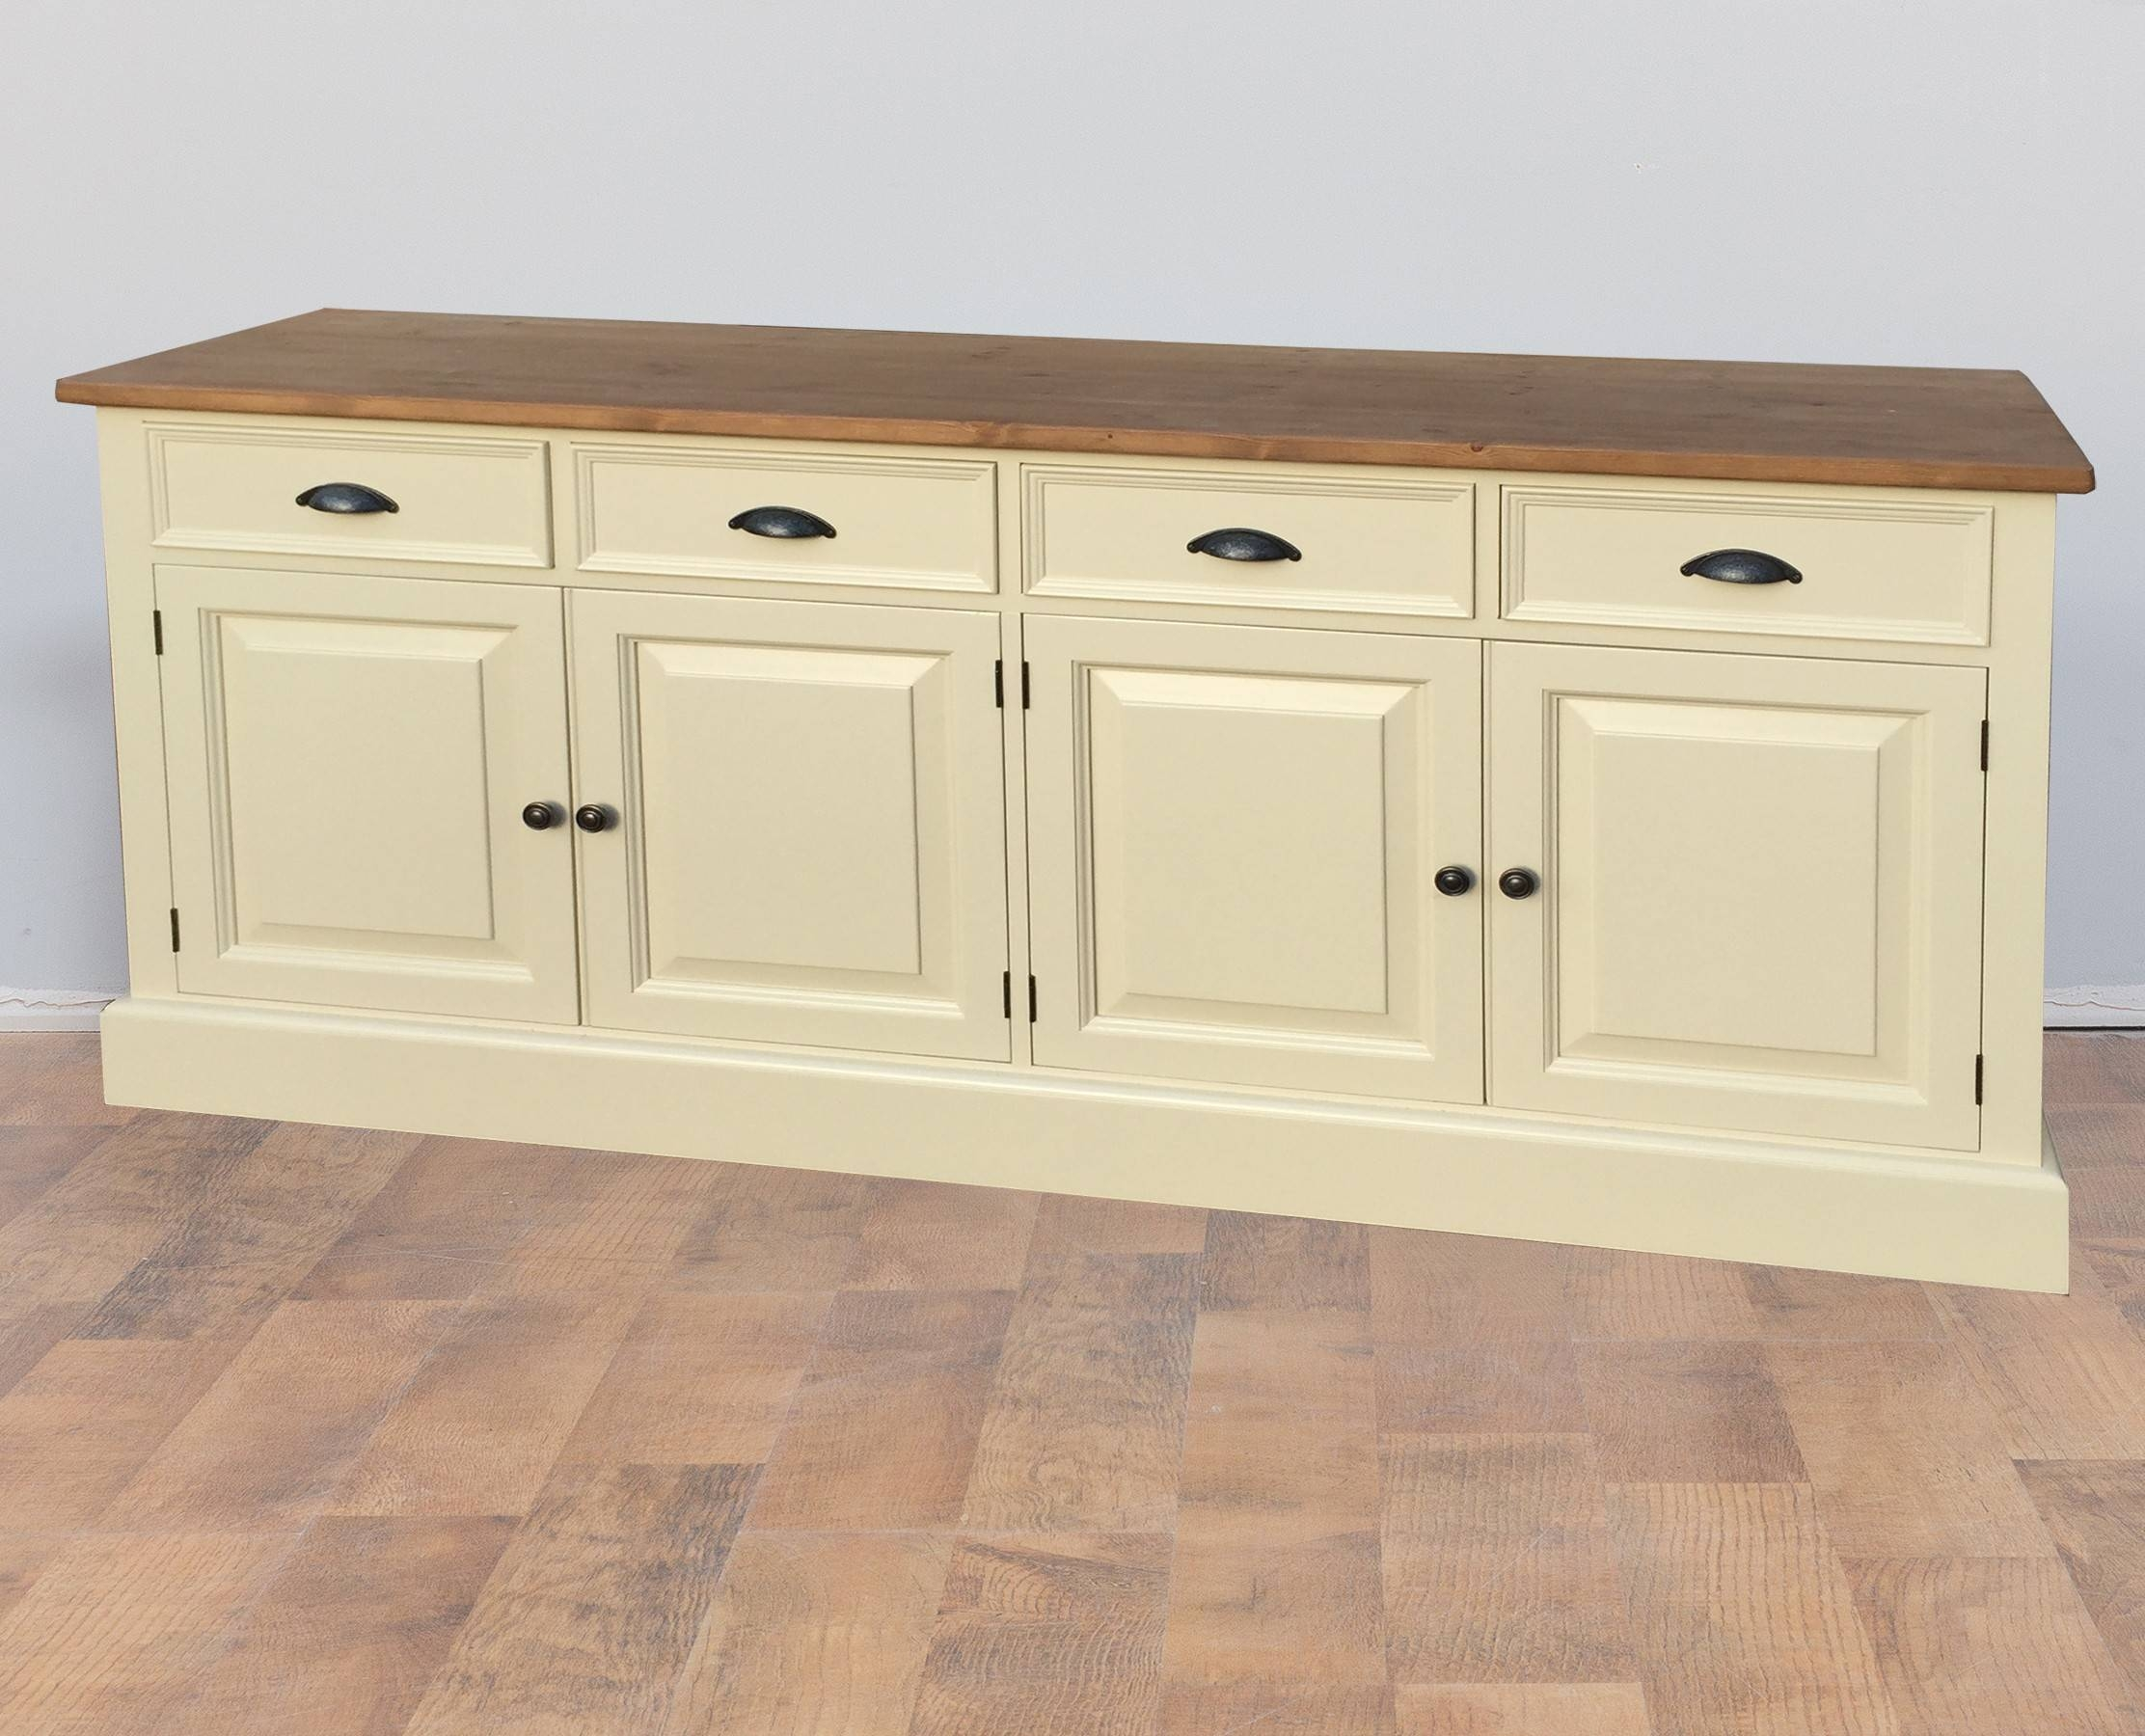 Sideboards | Pine, Oak & Painted Sideboards | Furniture4Yourhome In Sideboards For Sale (View 21 of 30)